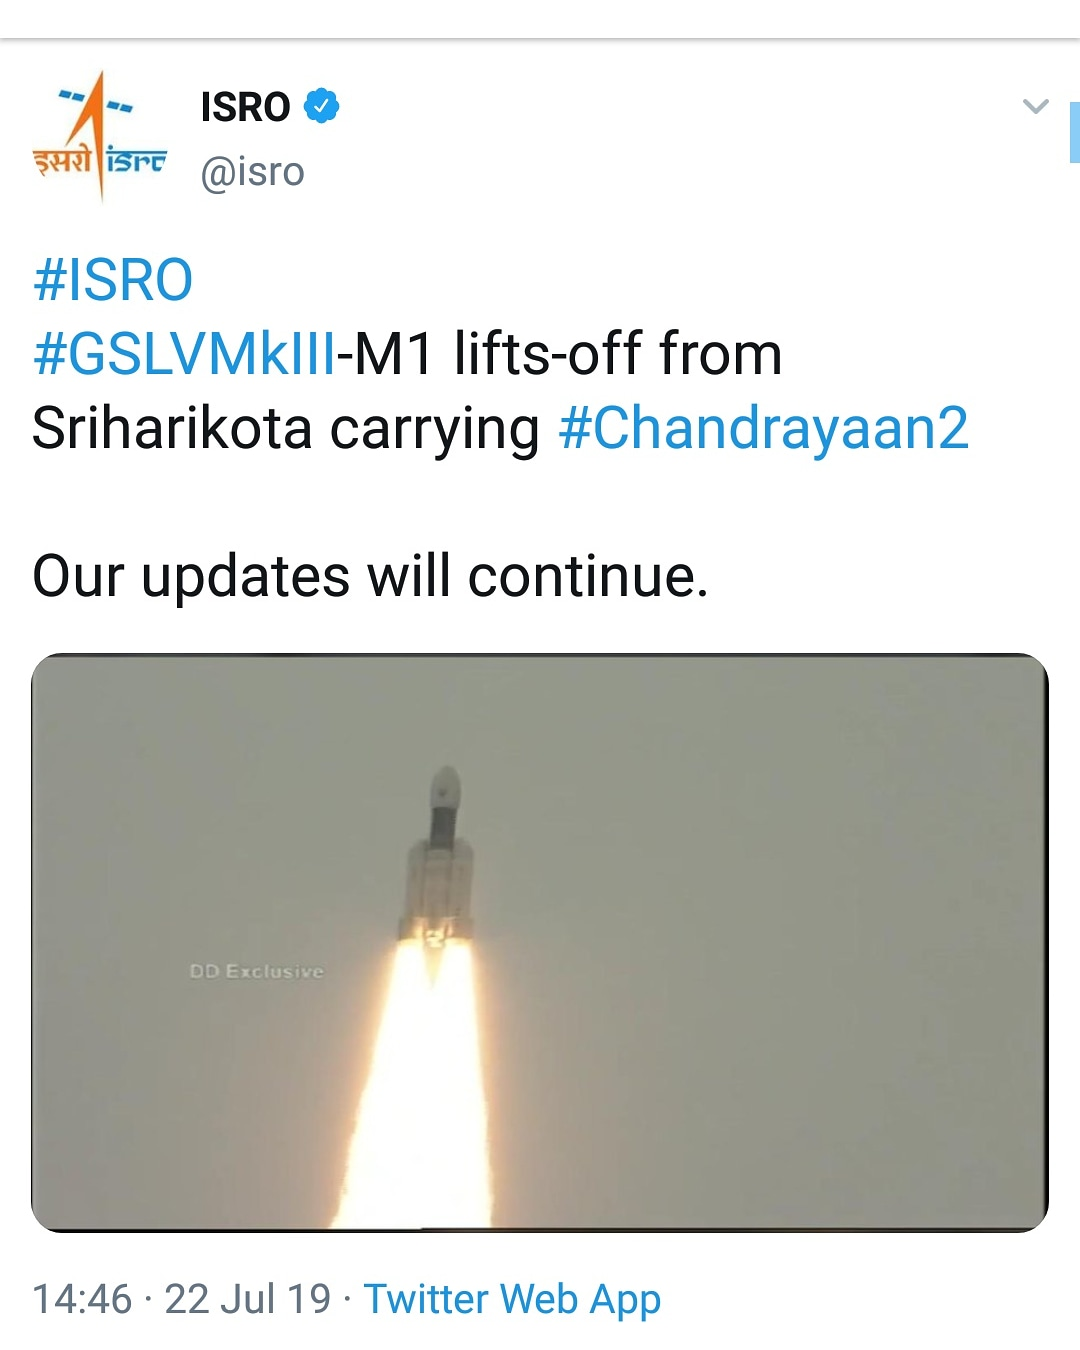 INDIA BECOMES A SPACE SUPERPOWER